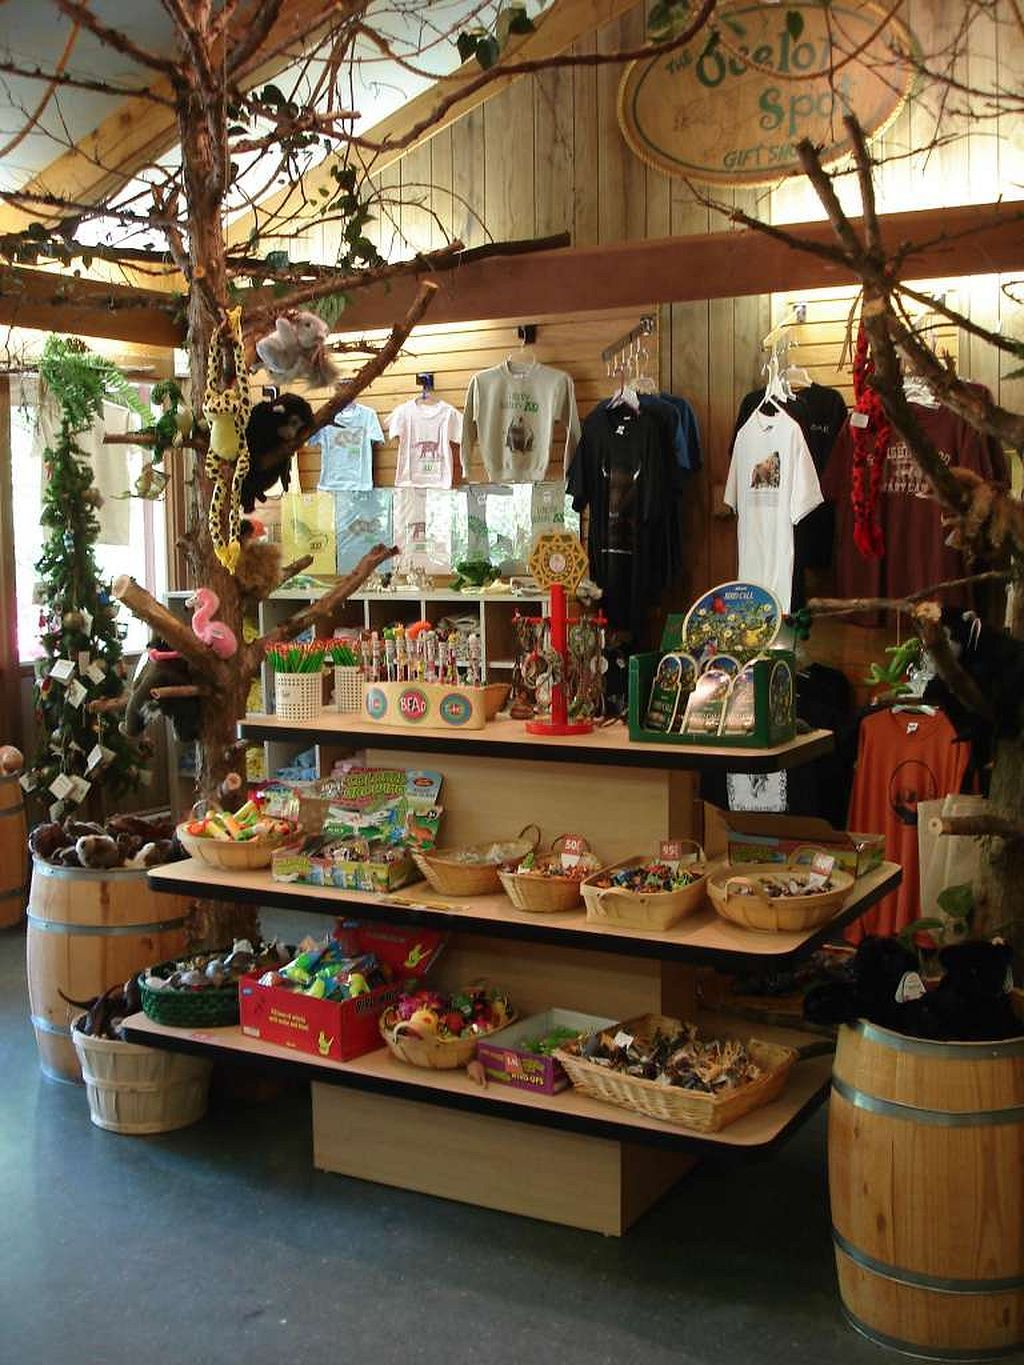 50+ Clever Gift Shop Merchandising Ideas in 2020 Gift